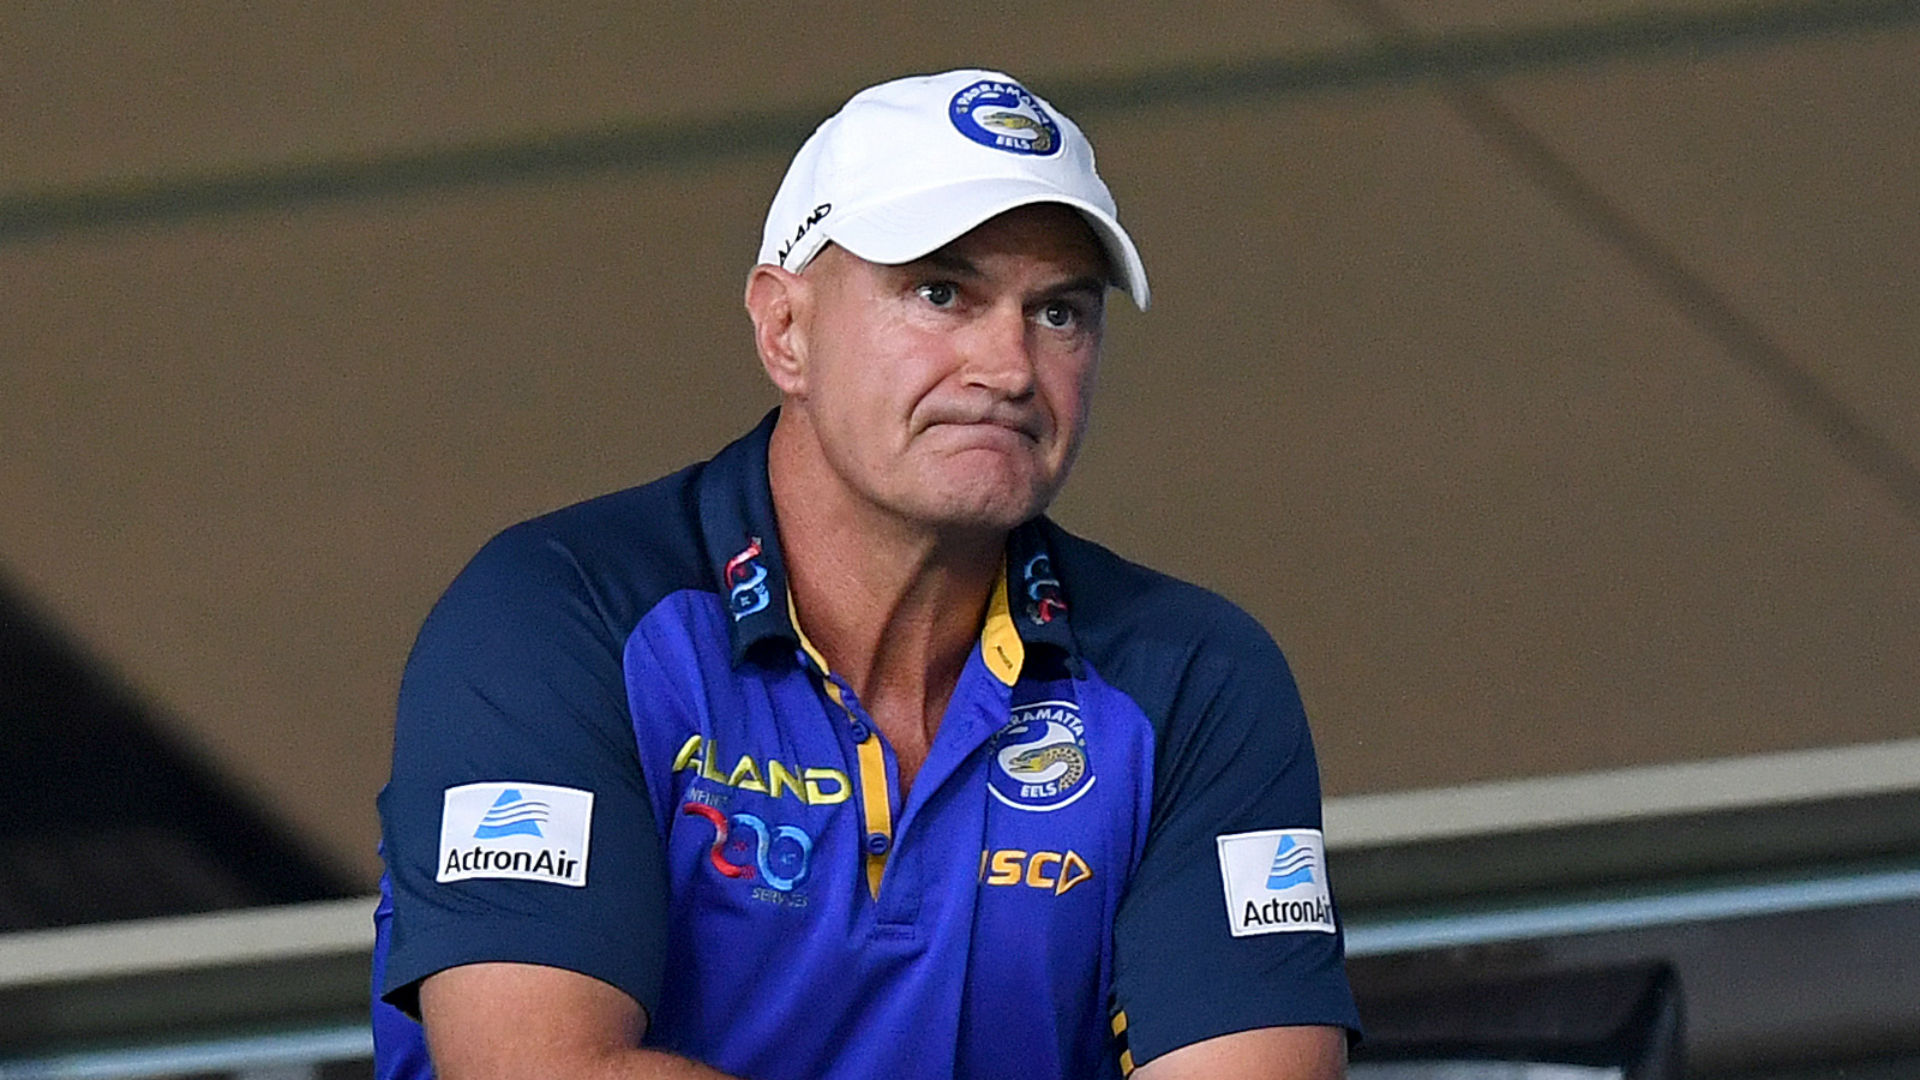 Coach Brad Arthur has been rewarded for turning around Parramatta Eels' fortunes with a contract extension.